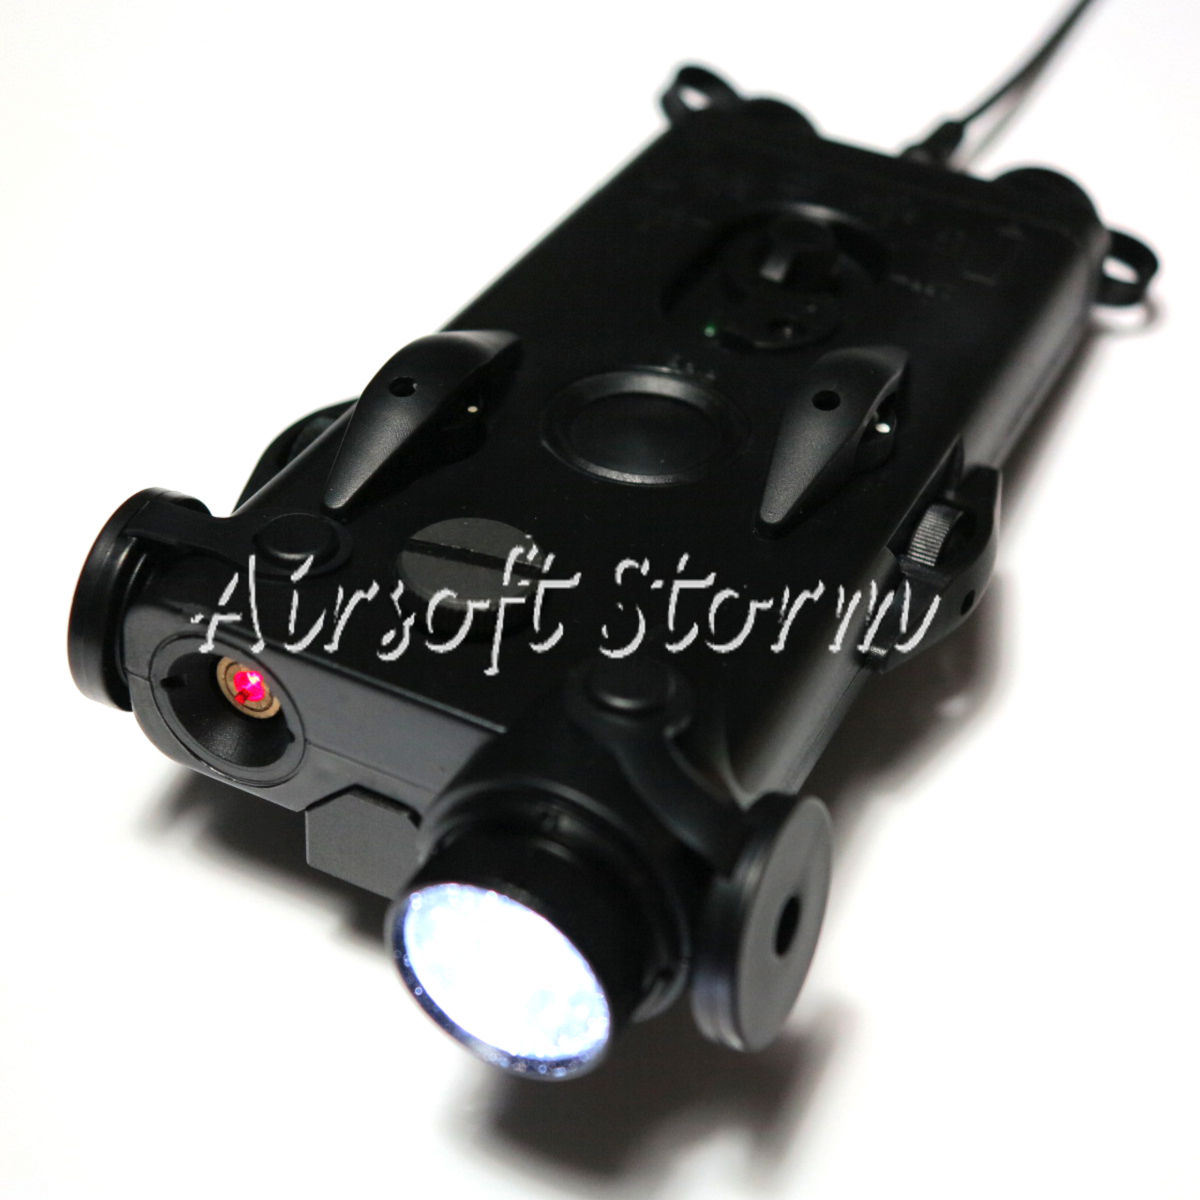 G&P PEQ 2 with Red Laser & CREE LED Flashlight Black GP467A